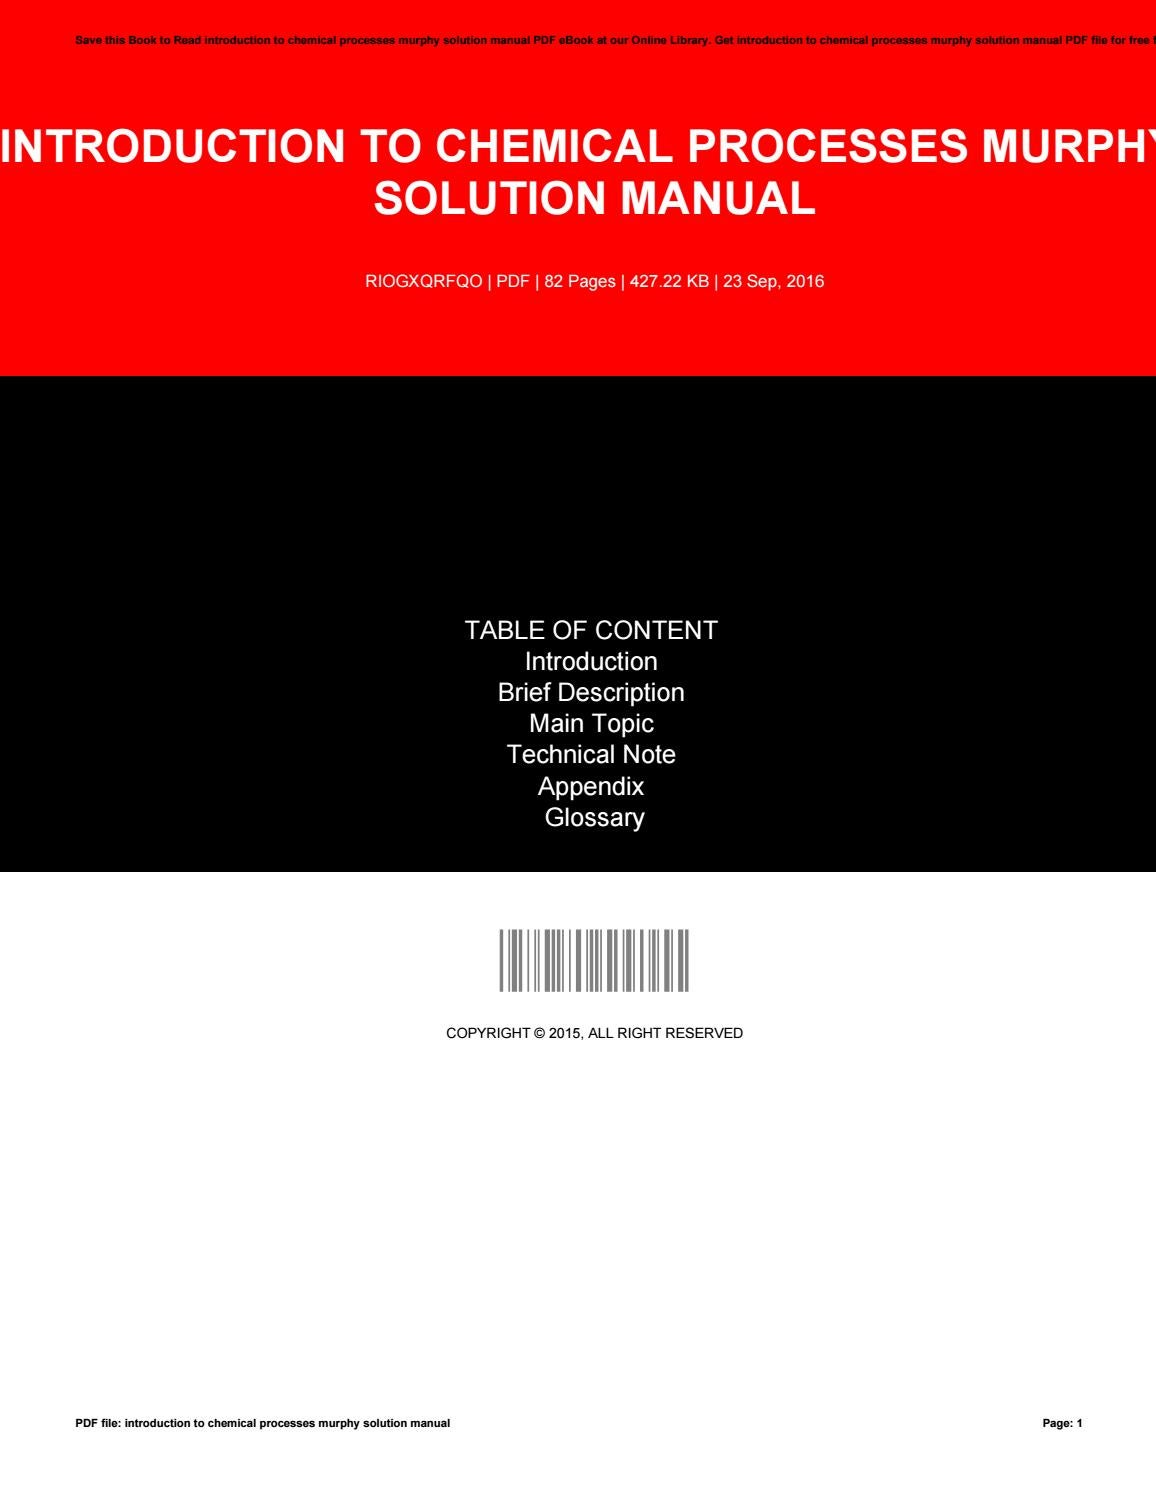 Introduction to chemical processes murphy solution manual by JohnKoenig1763  - issuu